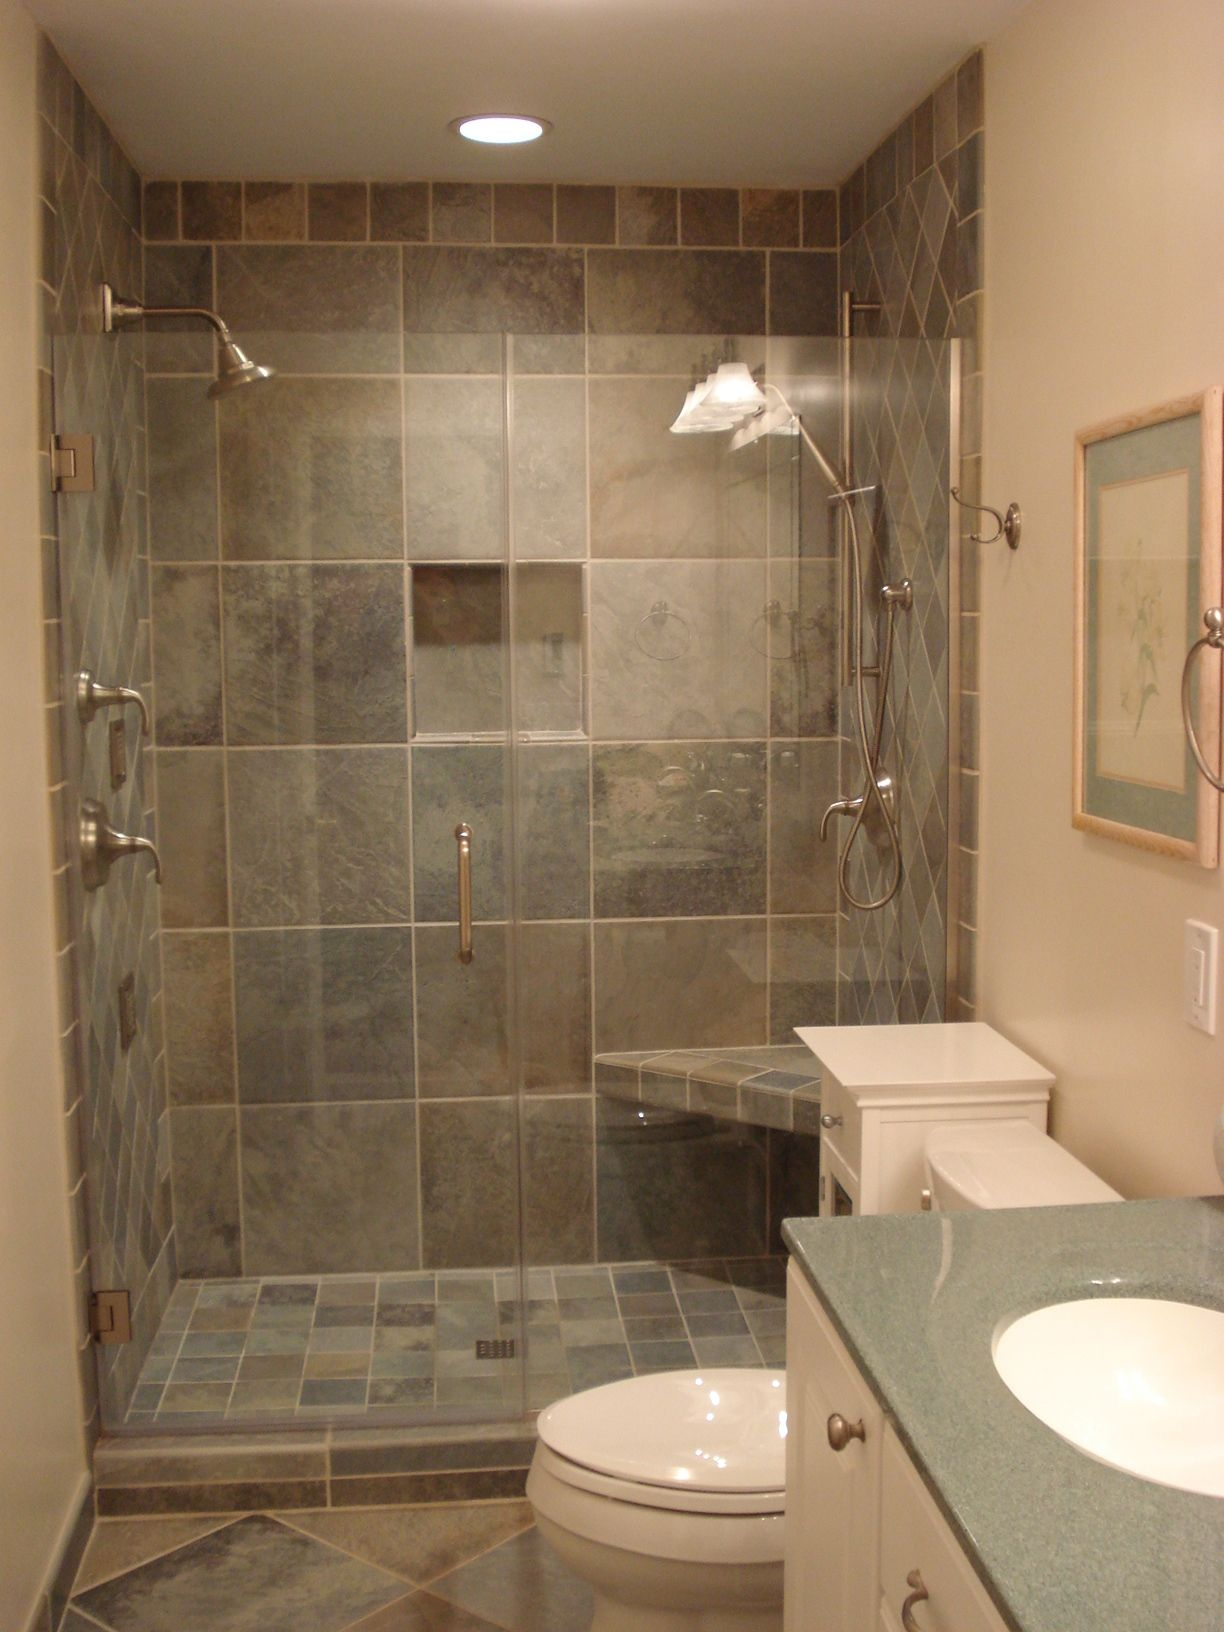 Before You Dive In If You Are Looking For Space Saving Furniture Ideas Be Sure To Check Small Bathroom Makeover Bathroom Remodel Shower Bathroom Remodel Cost